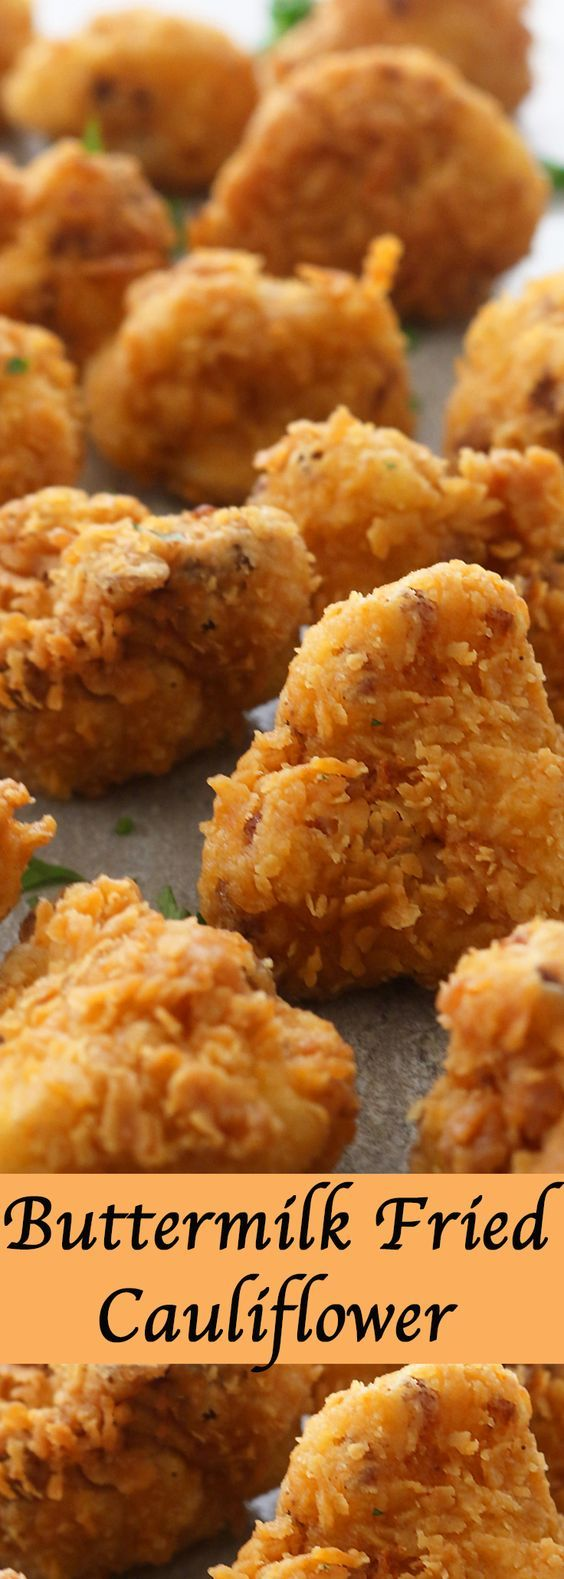 Vegetarian version of the classic buttermilk fried chicken. Crispy, crunchy, spicy cauliflower florets that are delicious as a snack or appetizer or side dish.